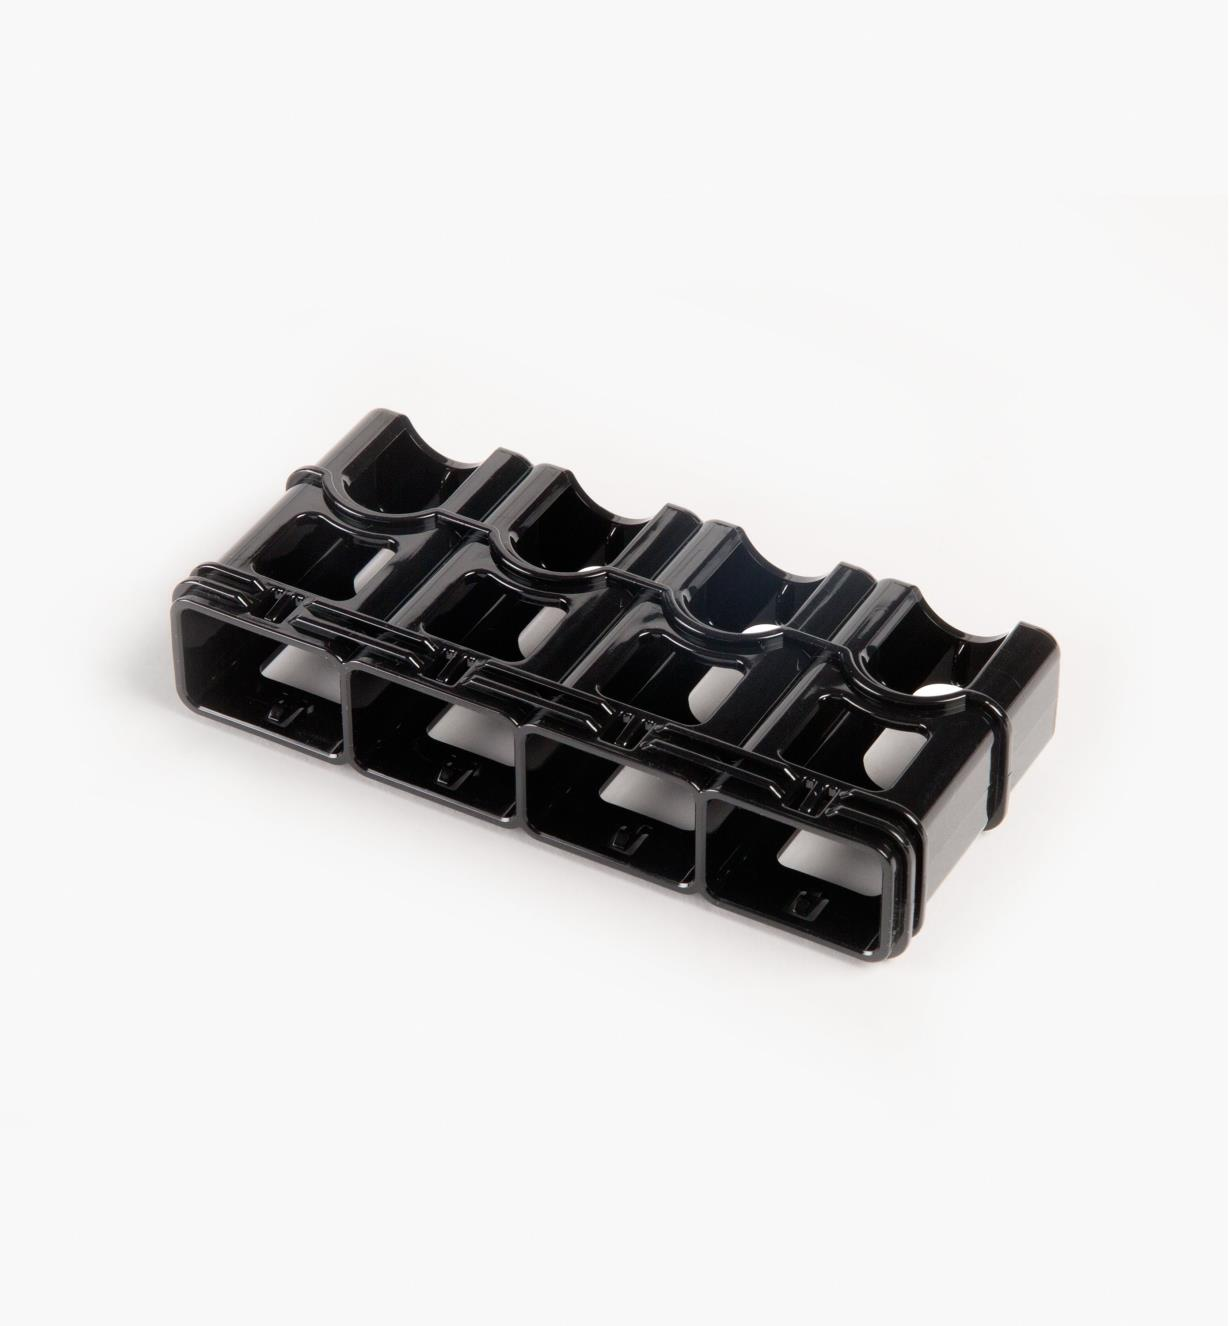 27K5092 - 9-Volt Storacell Battery Caddy